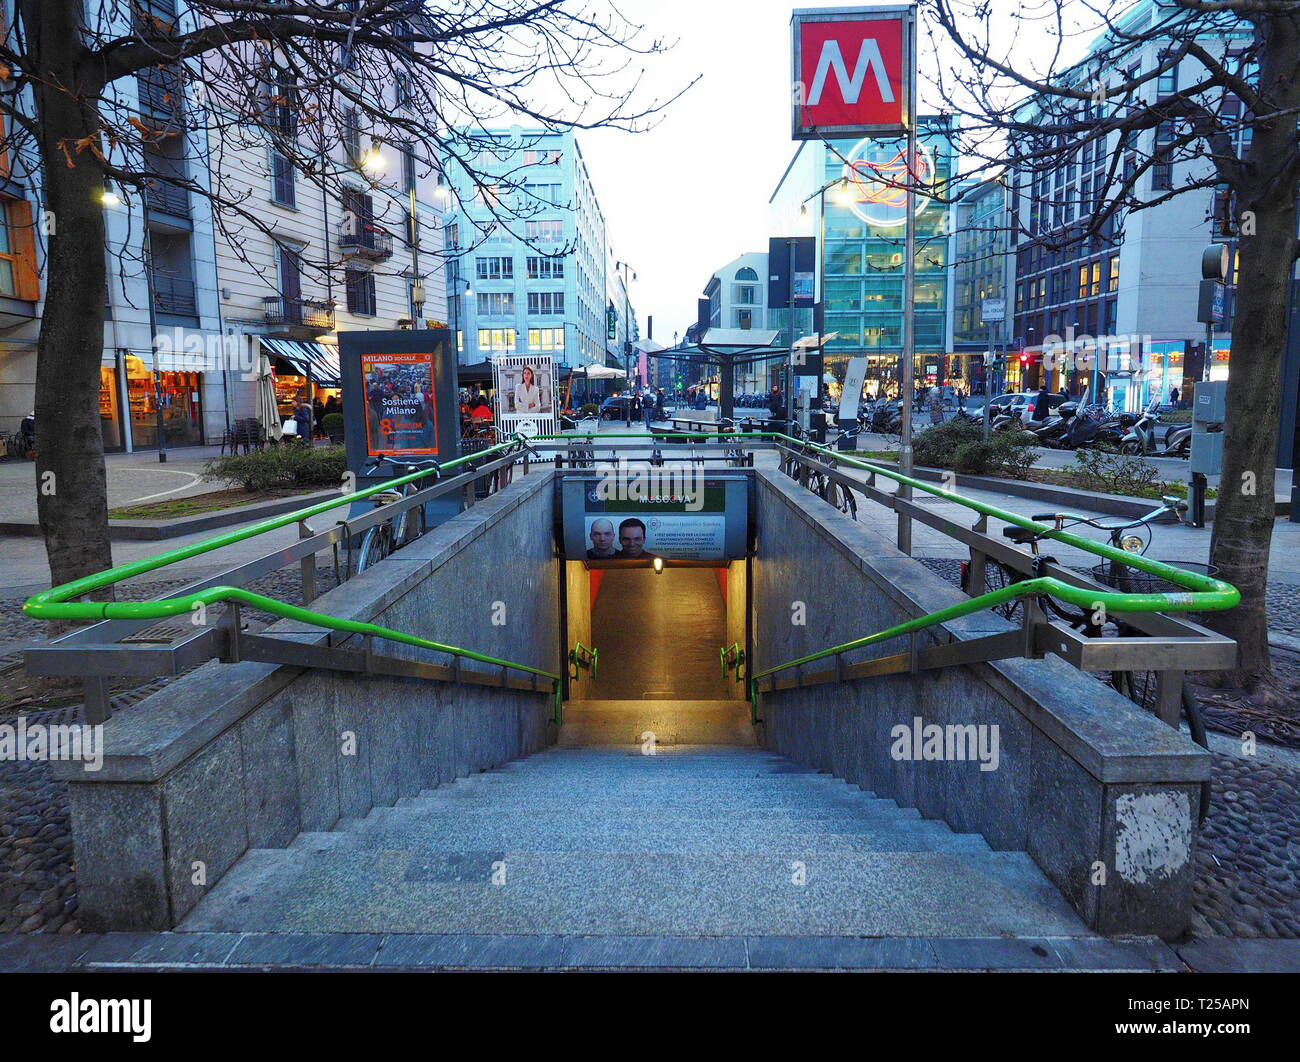 MILANO, Italy. 29 January 2019: Entrance to Moscova metro station in Milan. Moscova is a station on the line 2 of Milan underground, the green line. - Stock Image